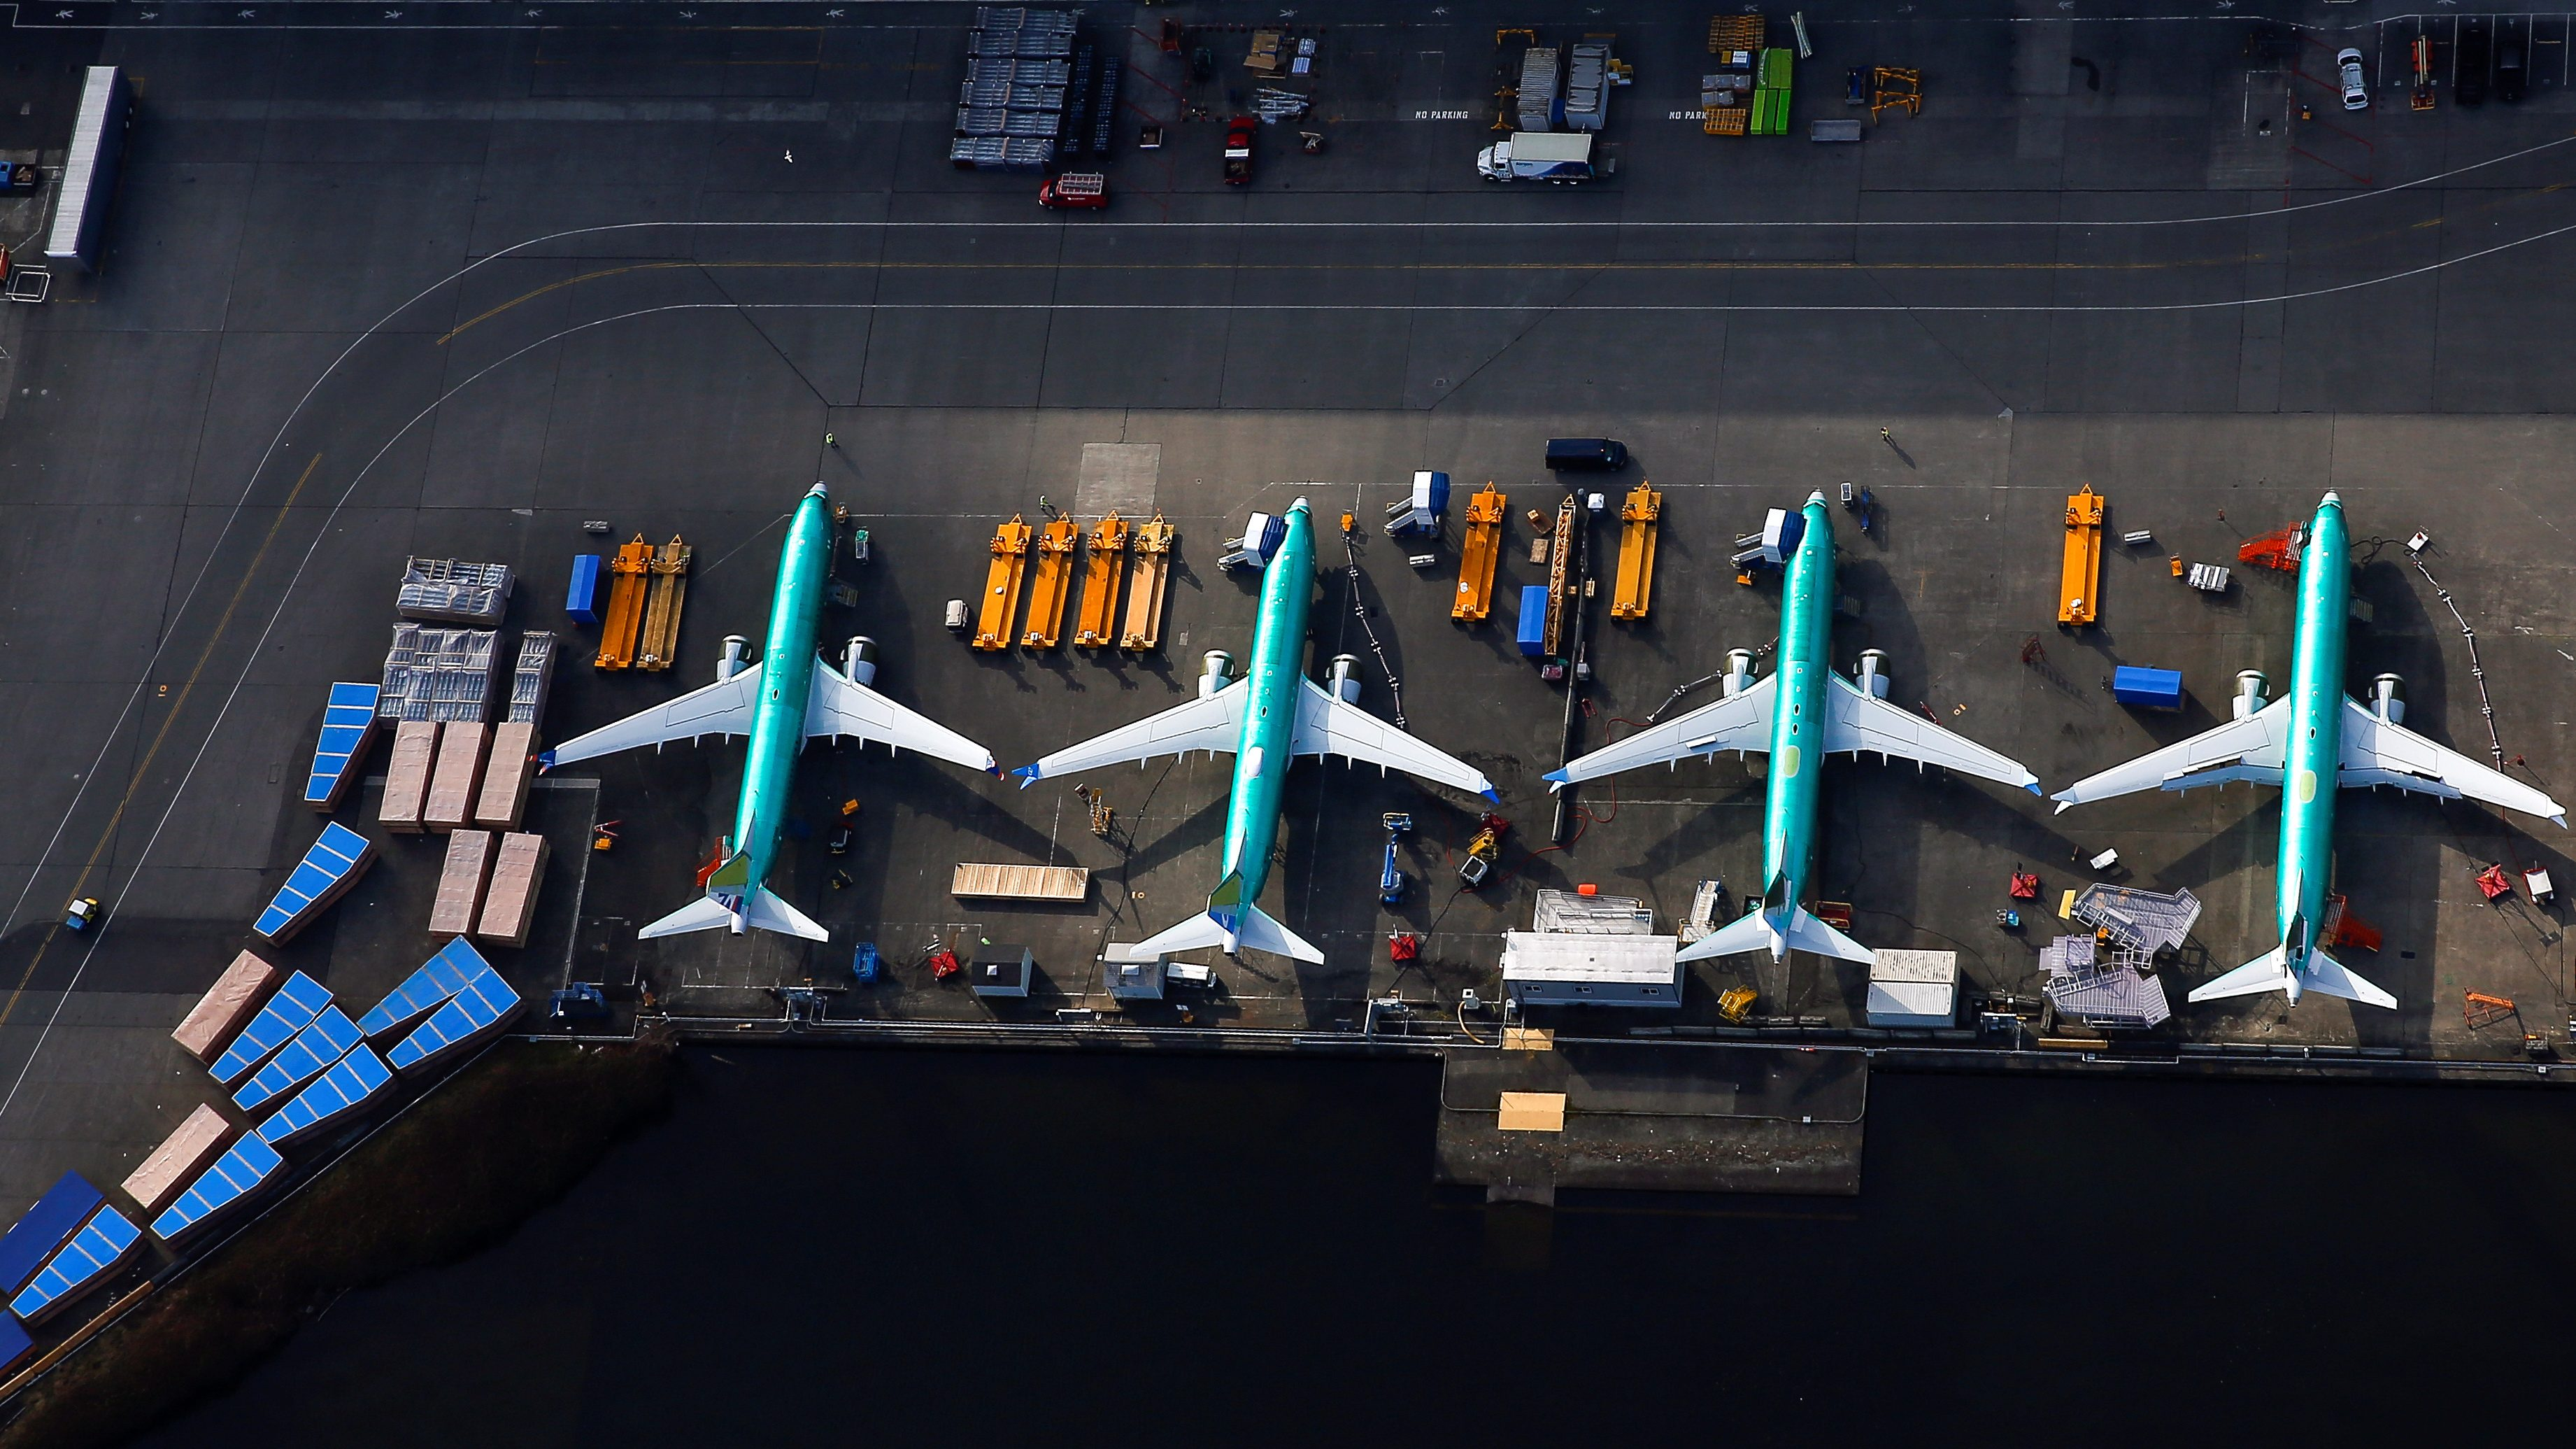 An aerial photo shows Boeing 737 MAX airplanes parked on the tarmac at the Boeing Factory in Renton, Washington, U.S. March 21, 2019.